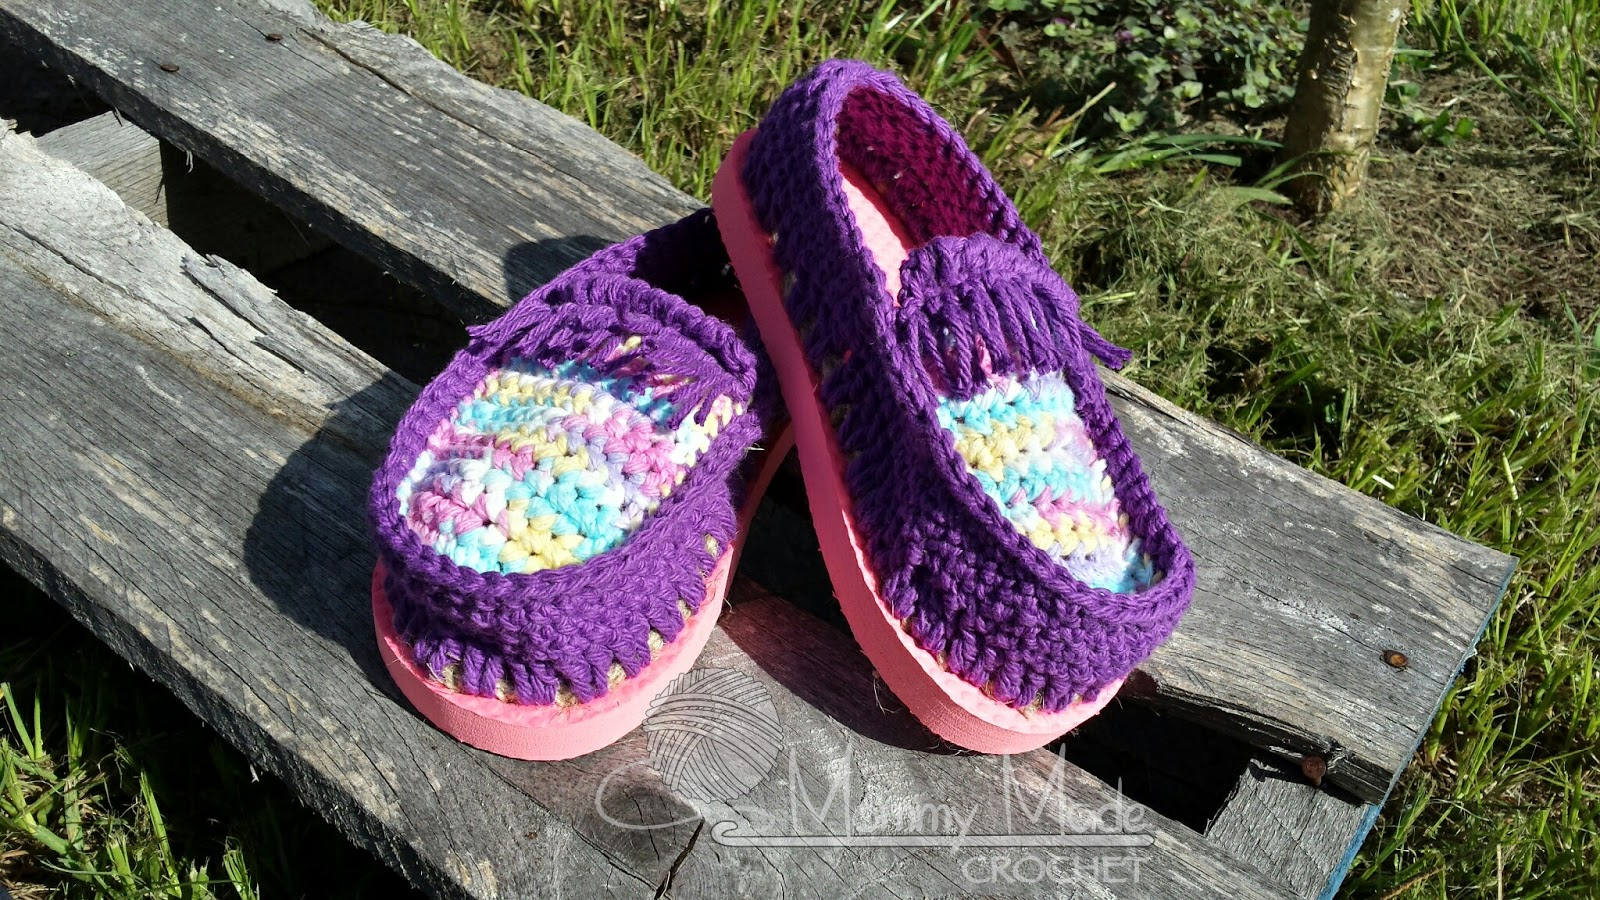 Mommy Made Crochet Cotton Moccasin Shoes With Flip Flop Soles